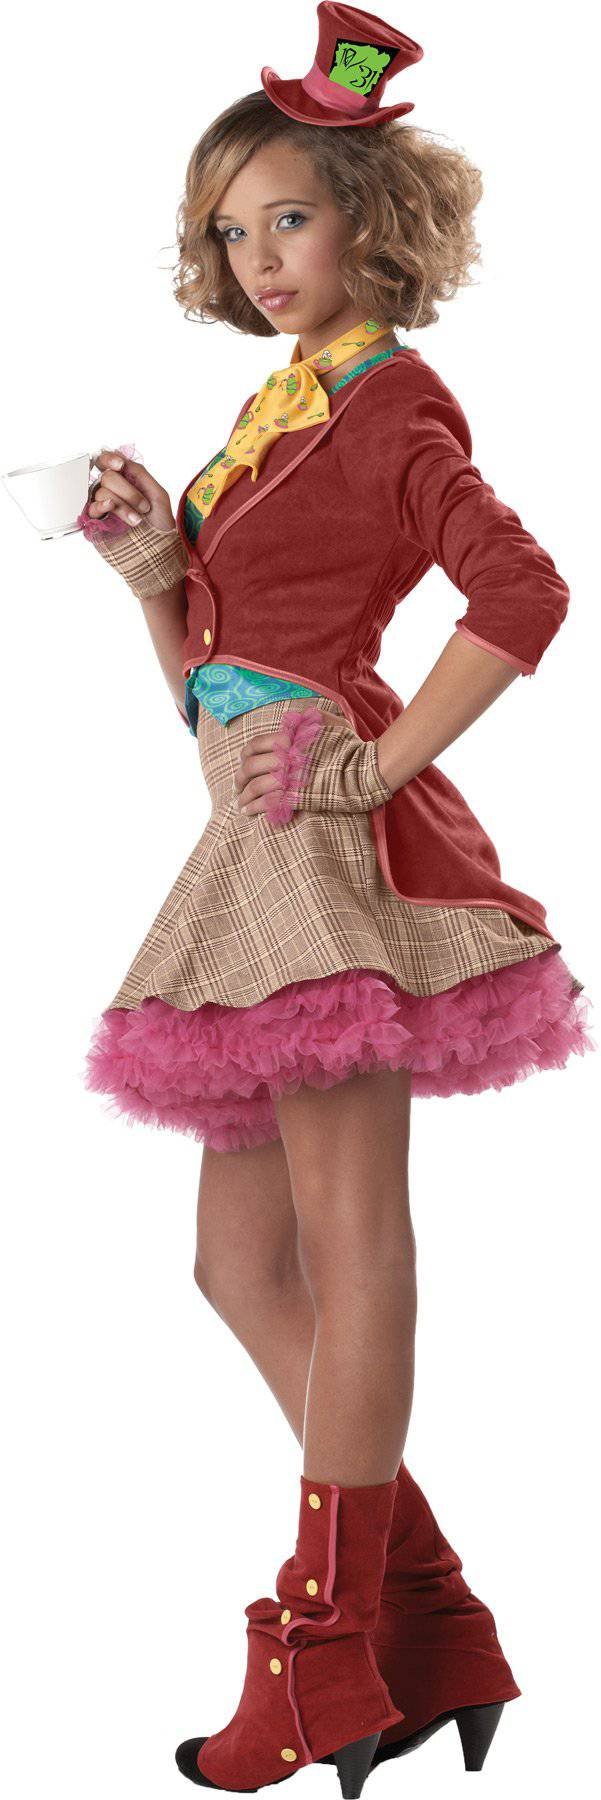 California Costumes Girls' The Mad Hatter Fancy Party Costume - Costume Arena